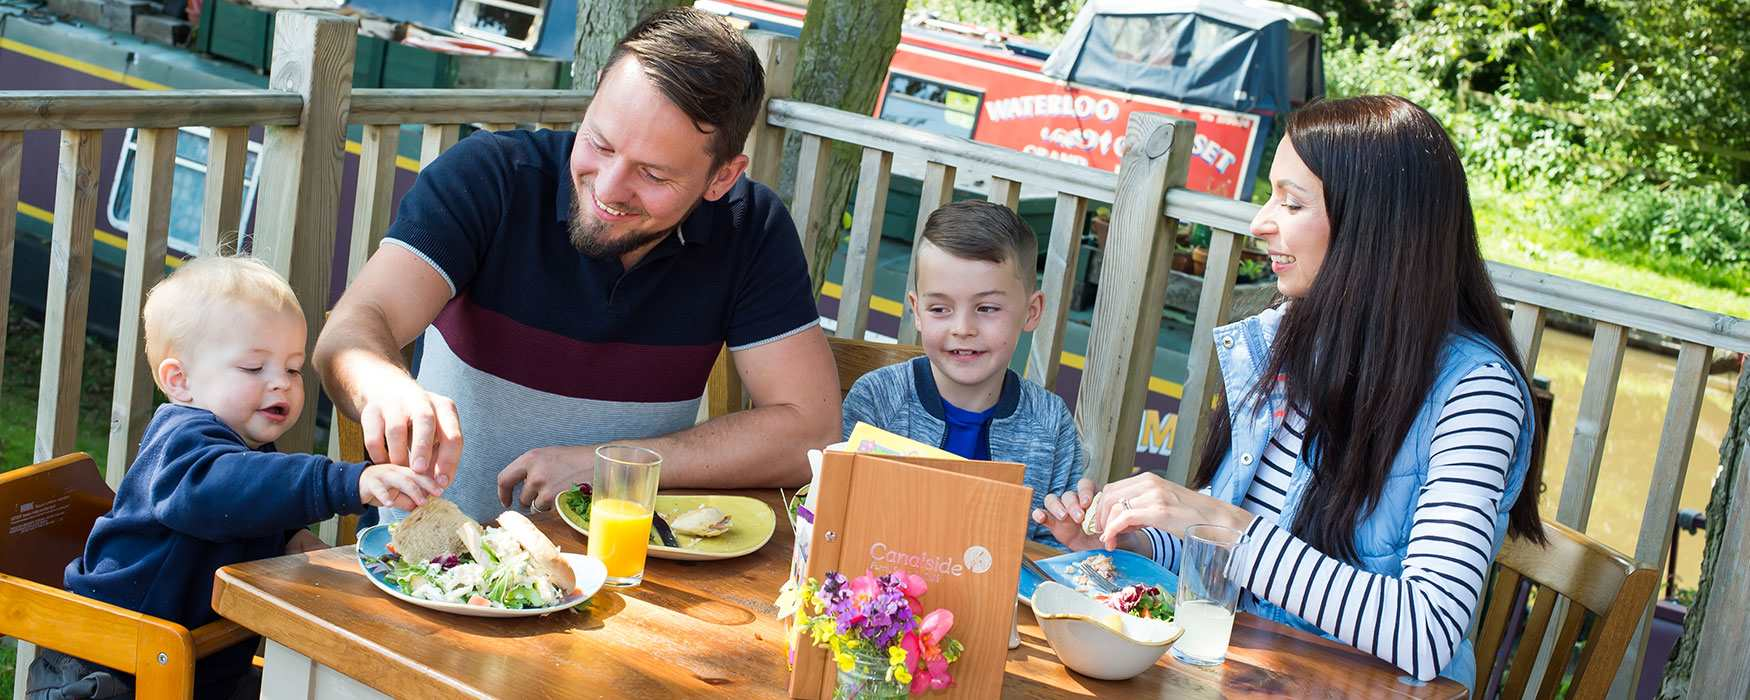 Family enjoying lunch on the outdoor terrace next to the canal at Canalside Cafe, Great Haywood